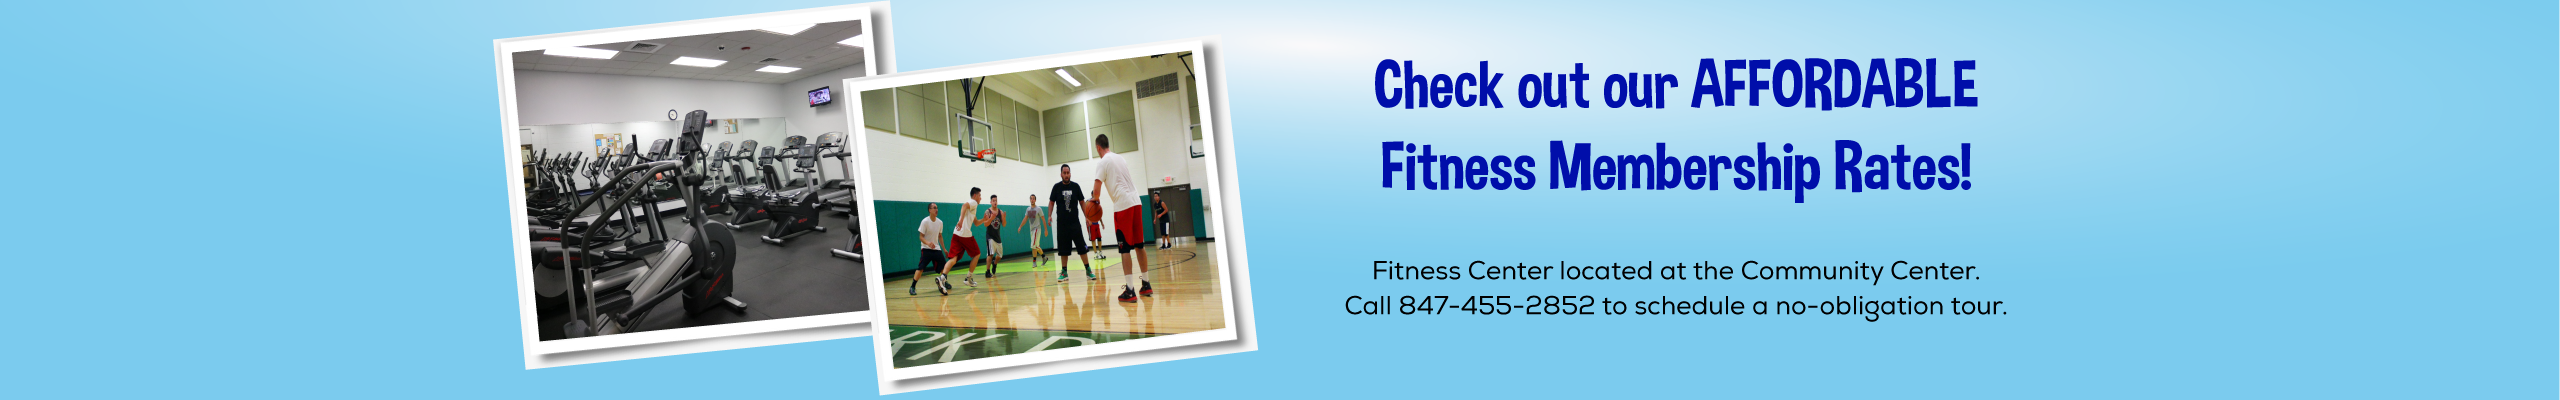 fitness-center-slider